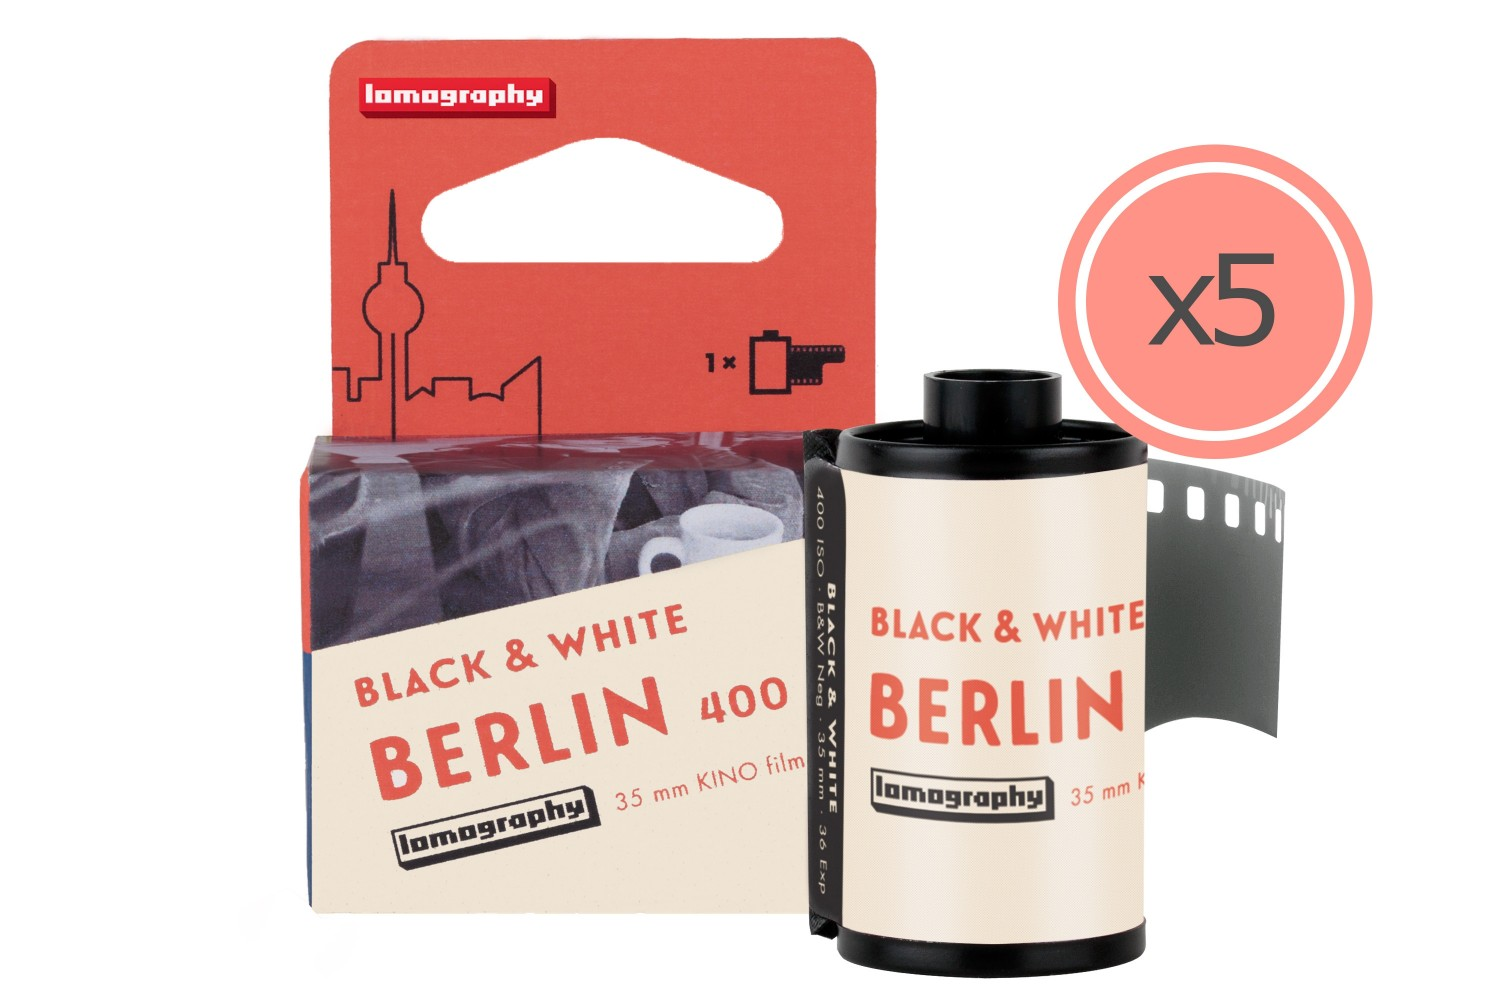 B&W 400 35 mm Berlin Kino Film Bundle of 5 - Preorder